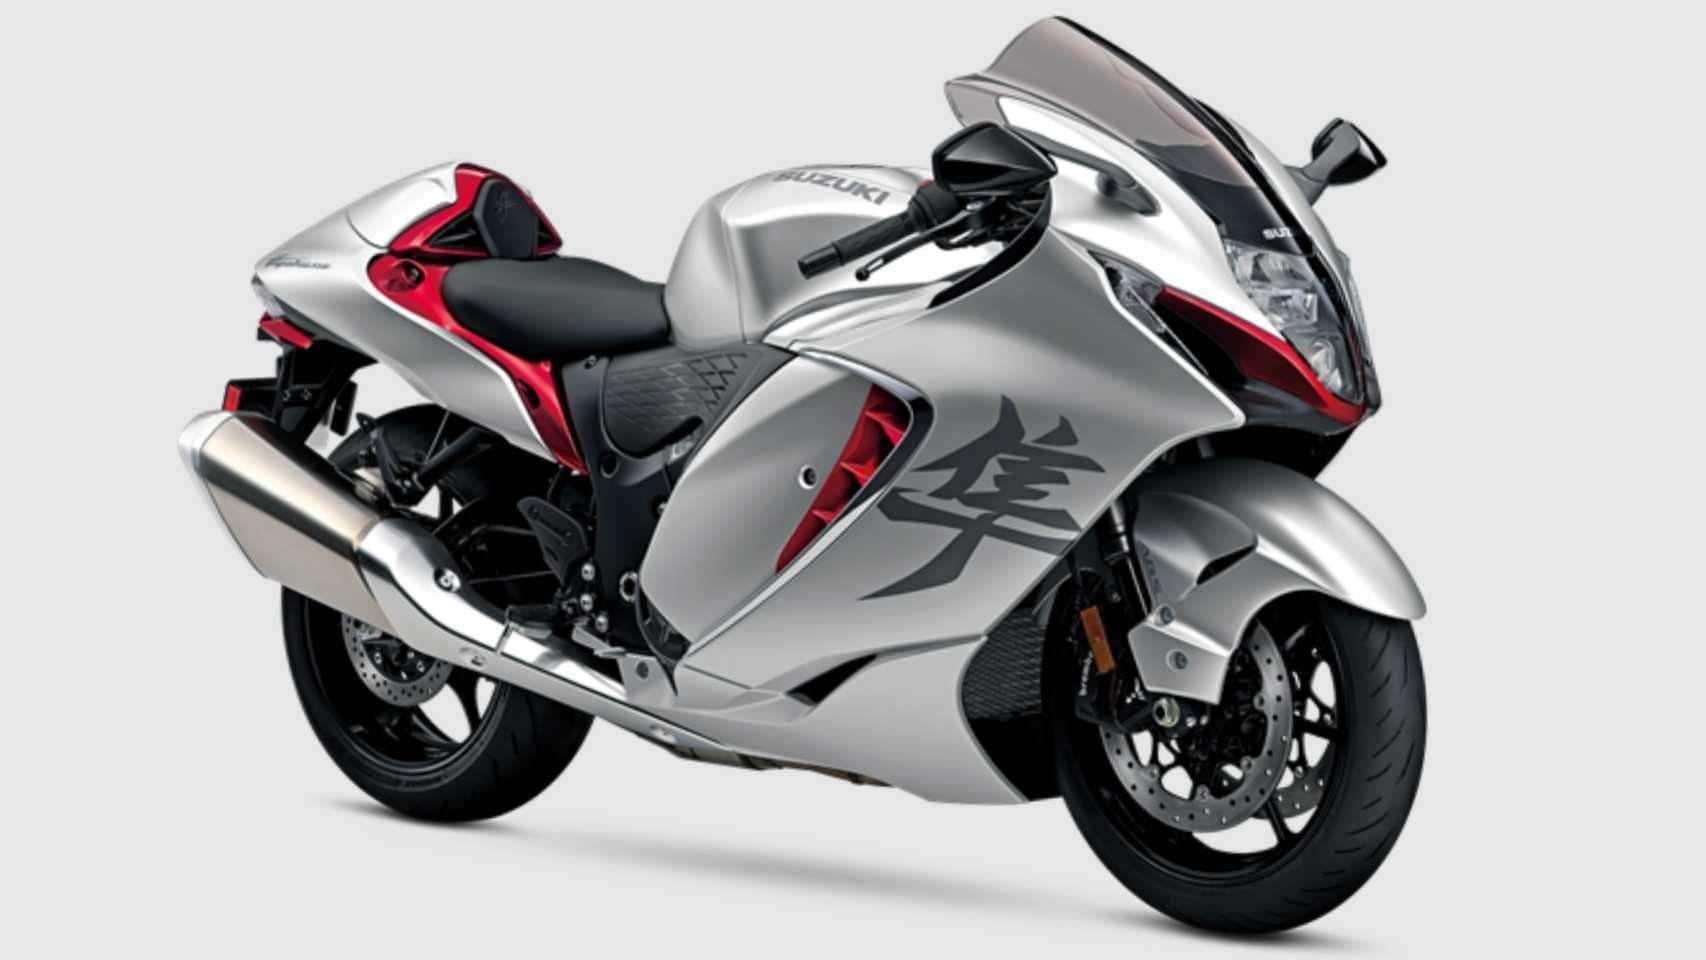 Suzuki claims the new Hayabusa's drag coefficient is among the best in the world for street-legal motorcycles. Image: Suzuki